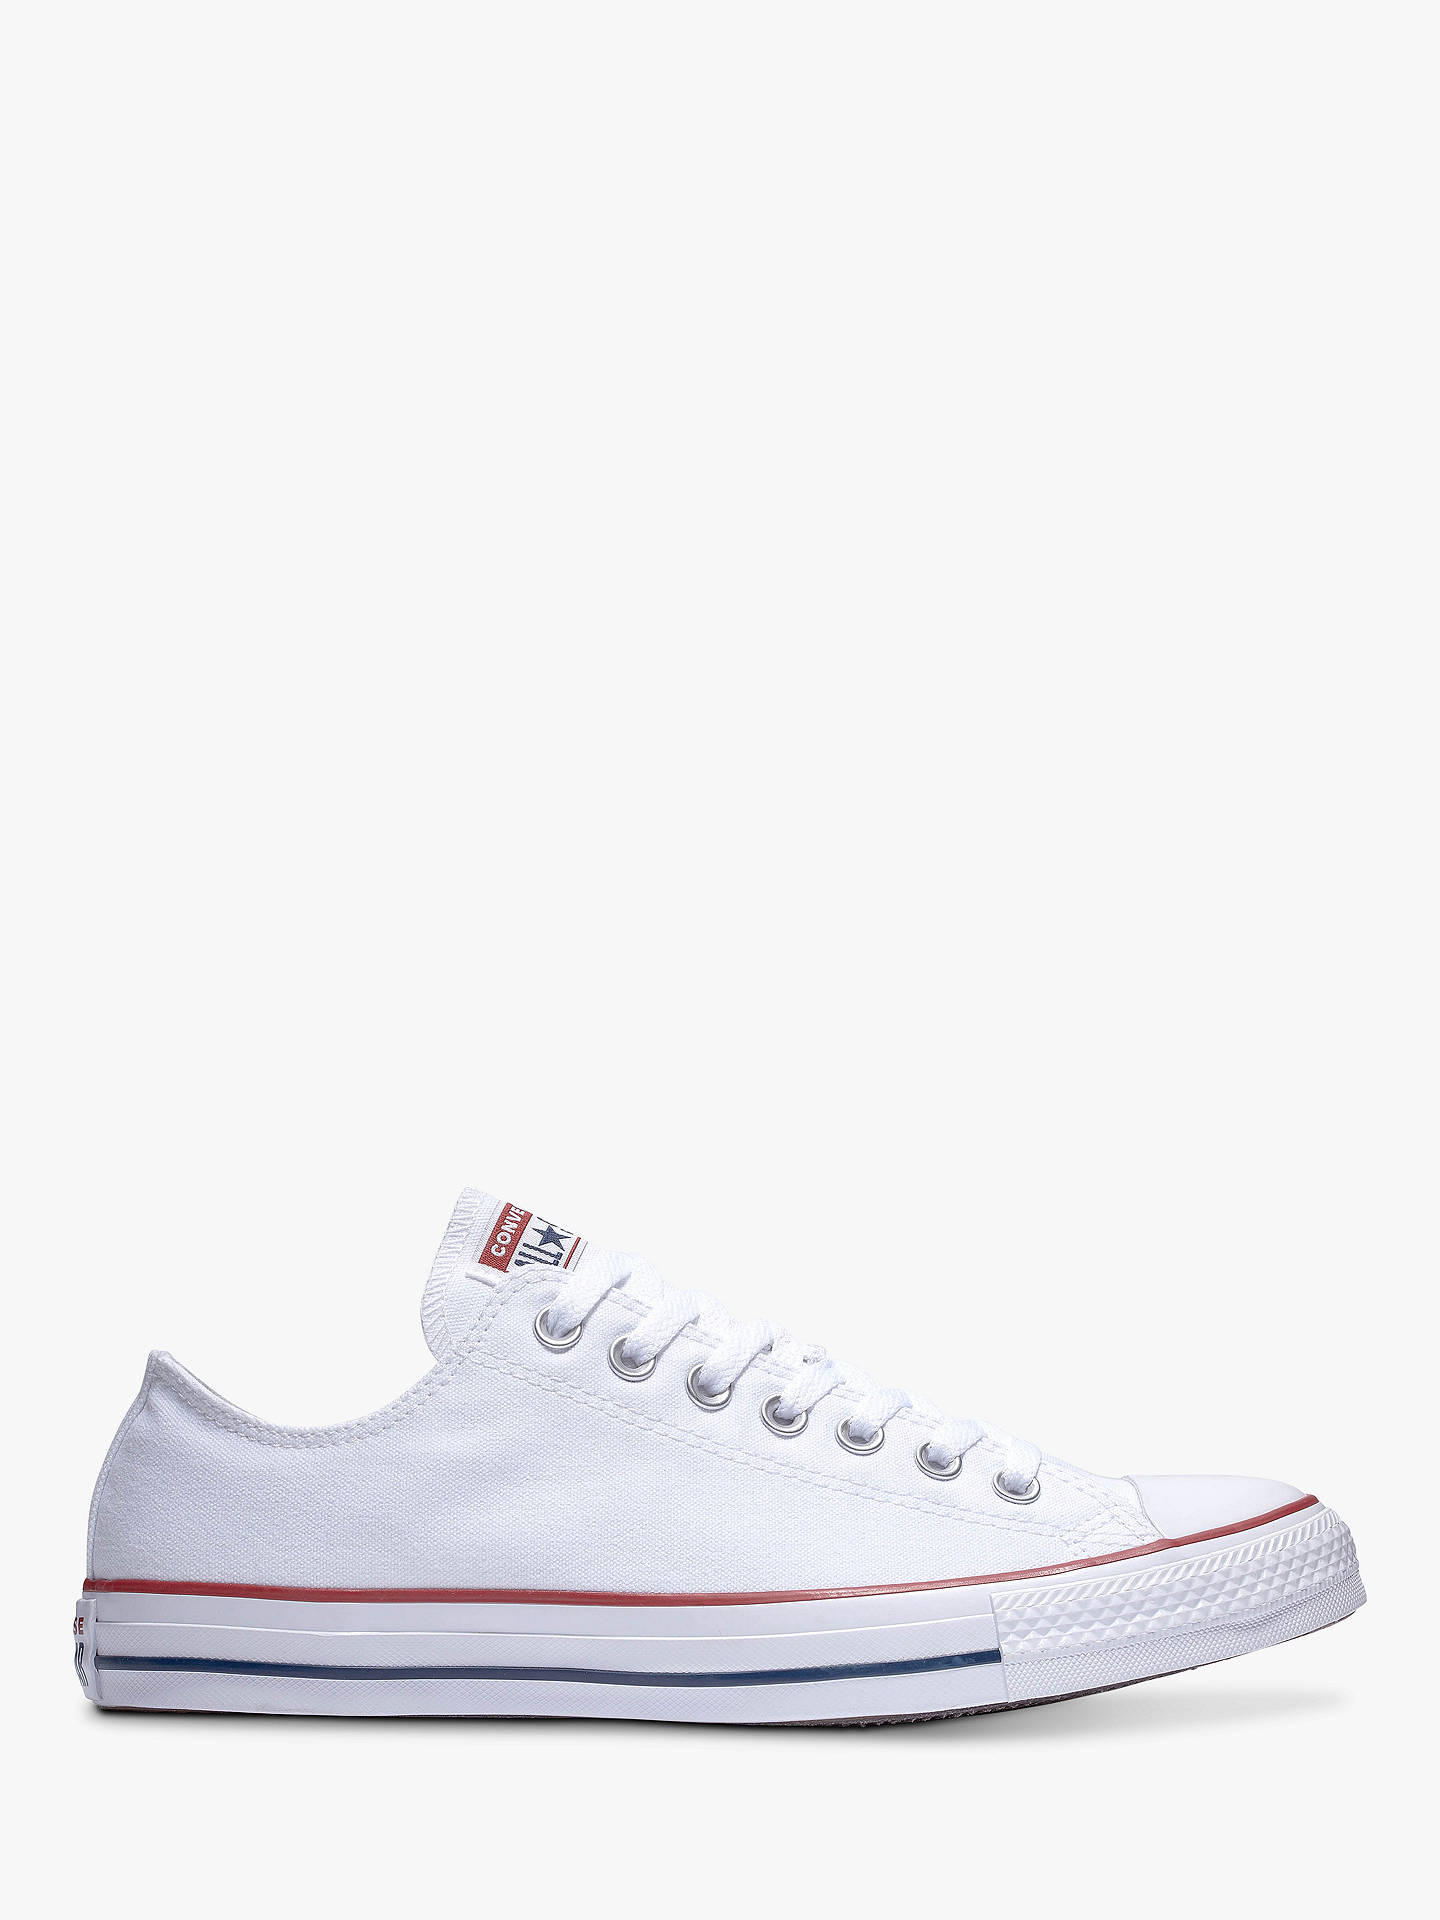 3b9e9173aac0 Buy Converse Chuck Taylor All Star Canvas Ox Low-Top Trainers